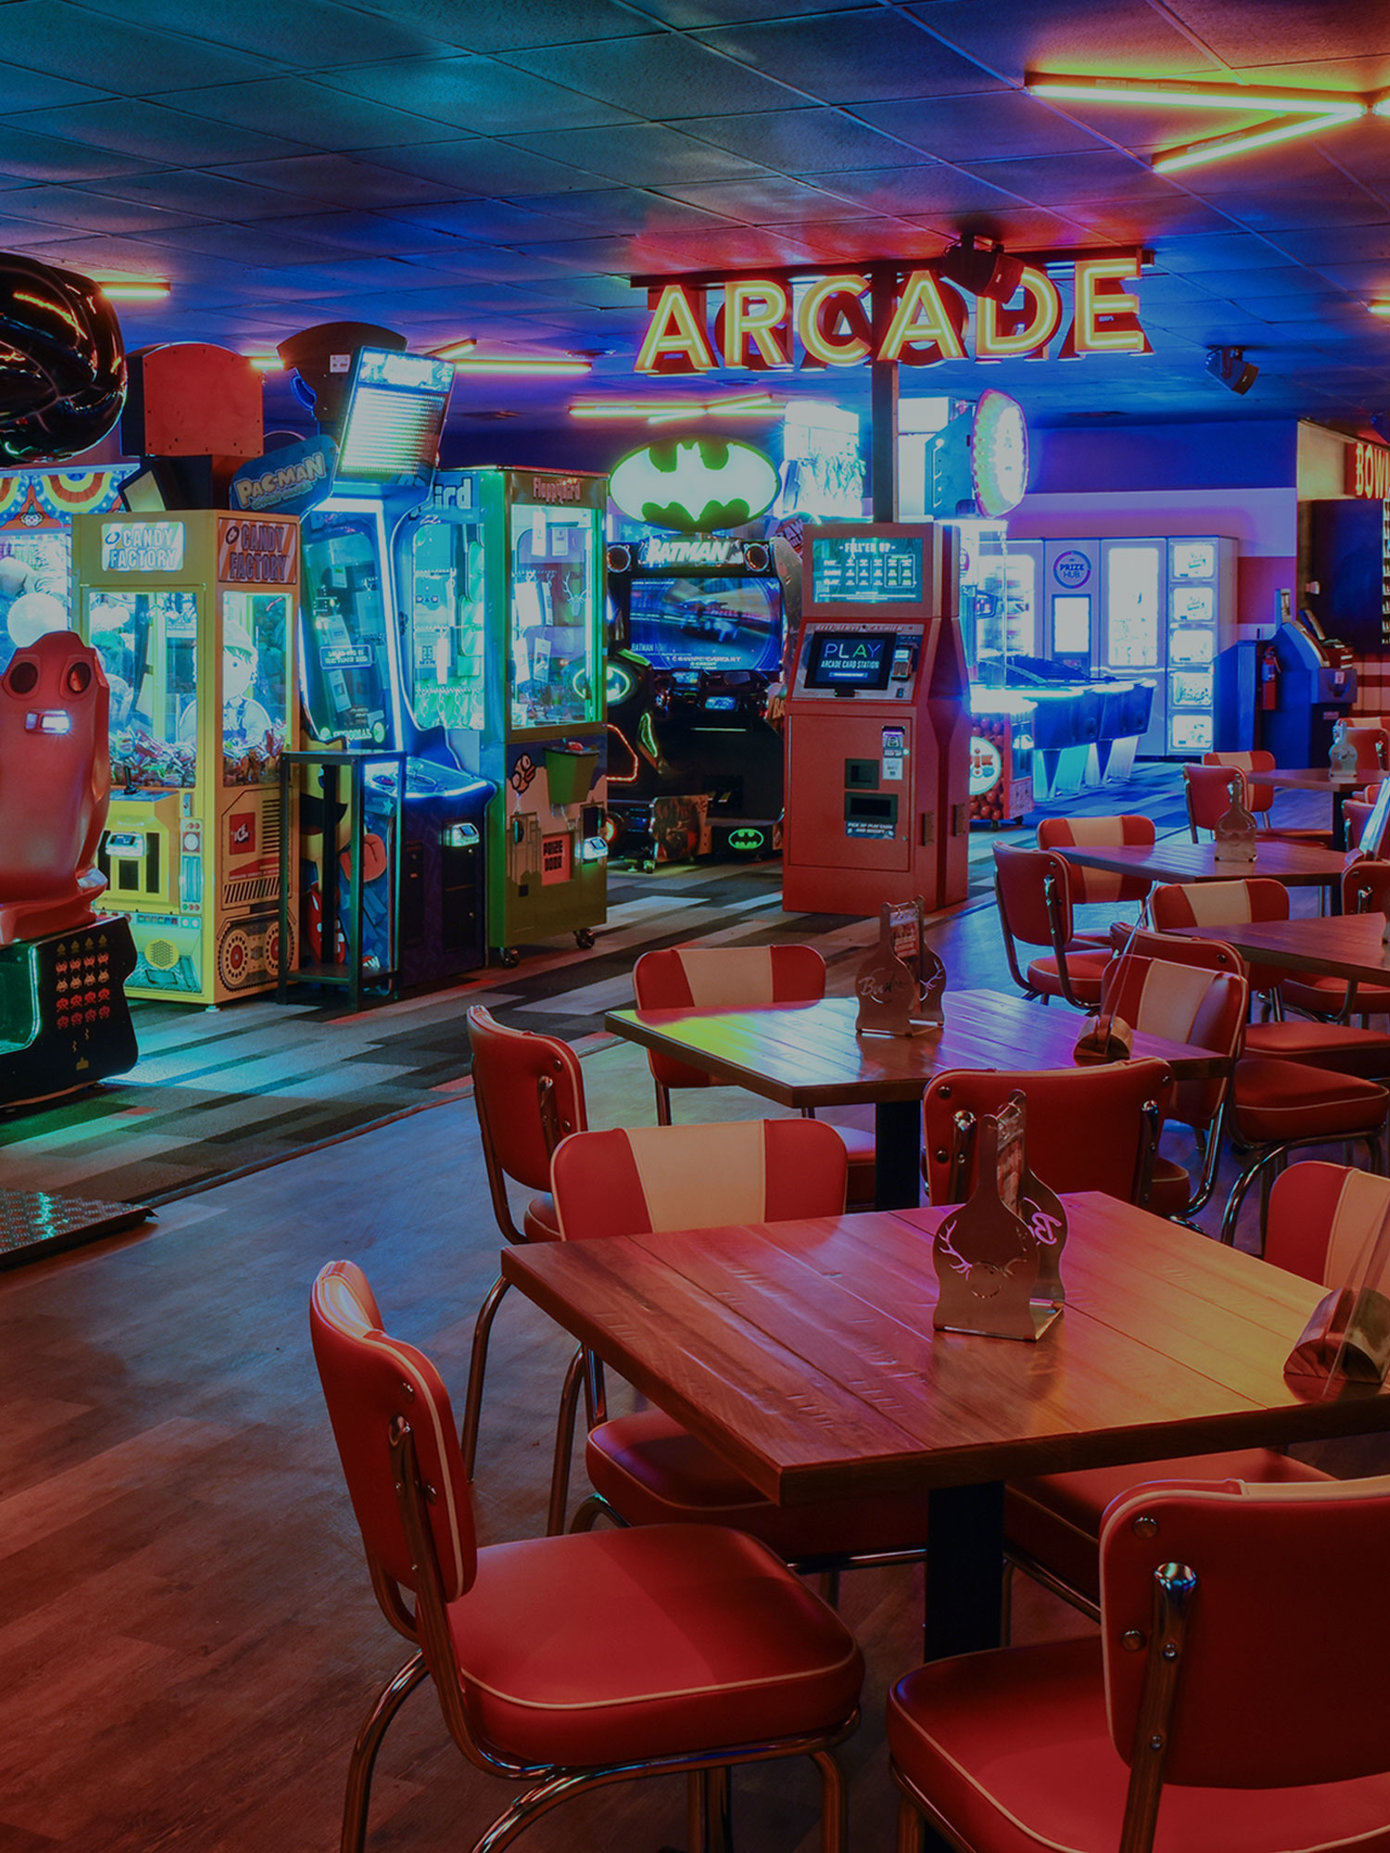 Arcade area and dining tables